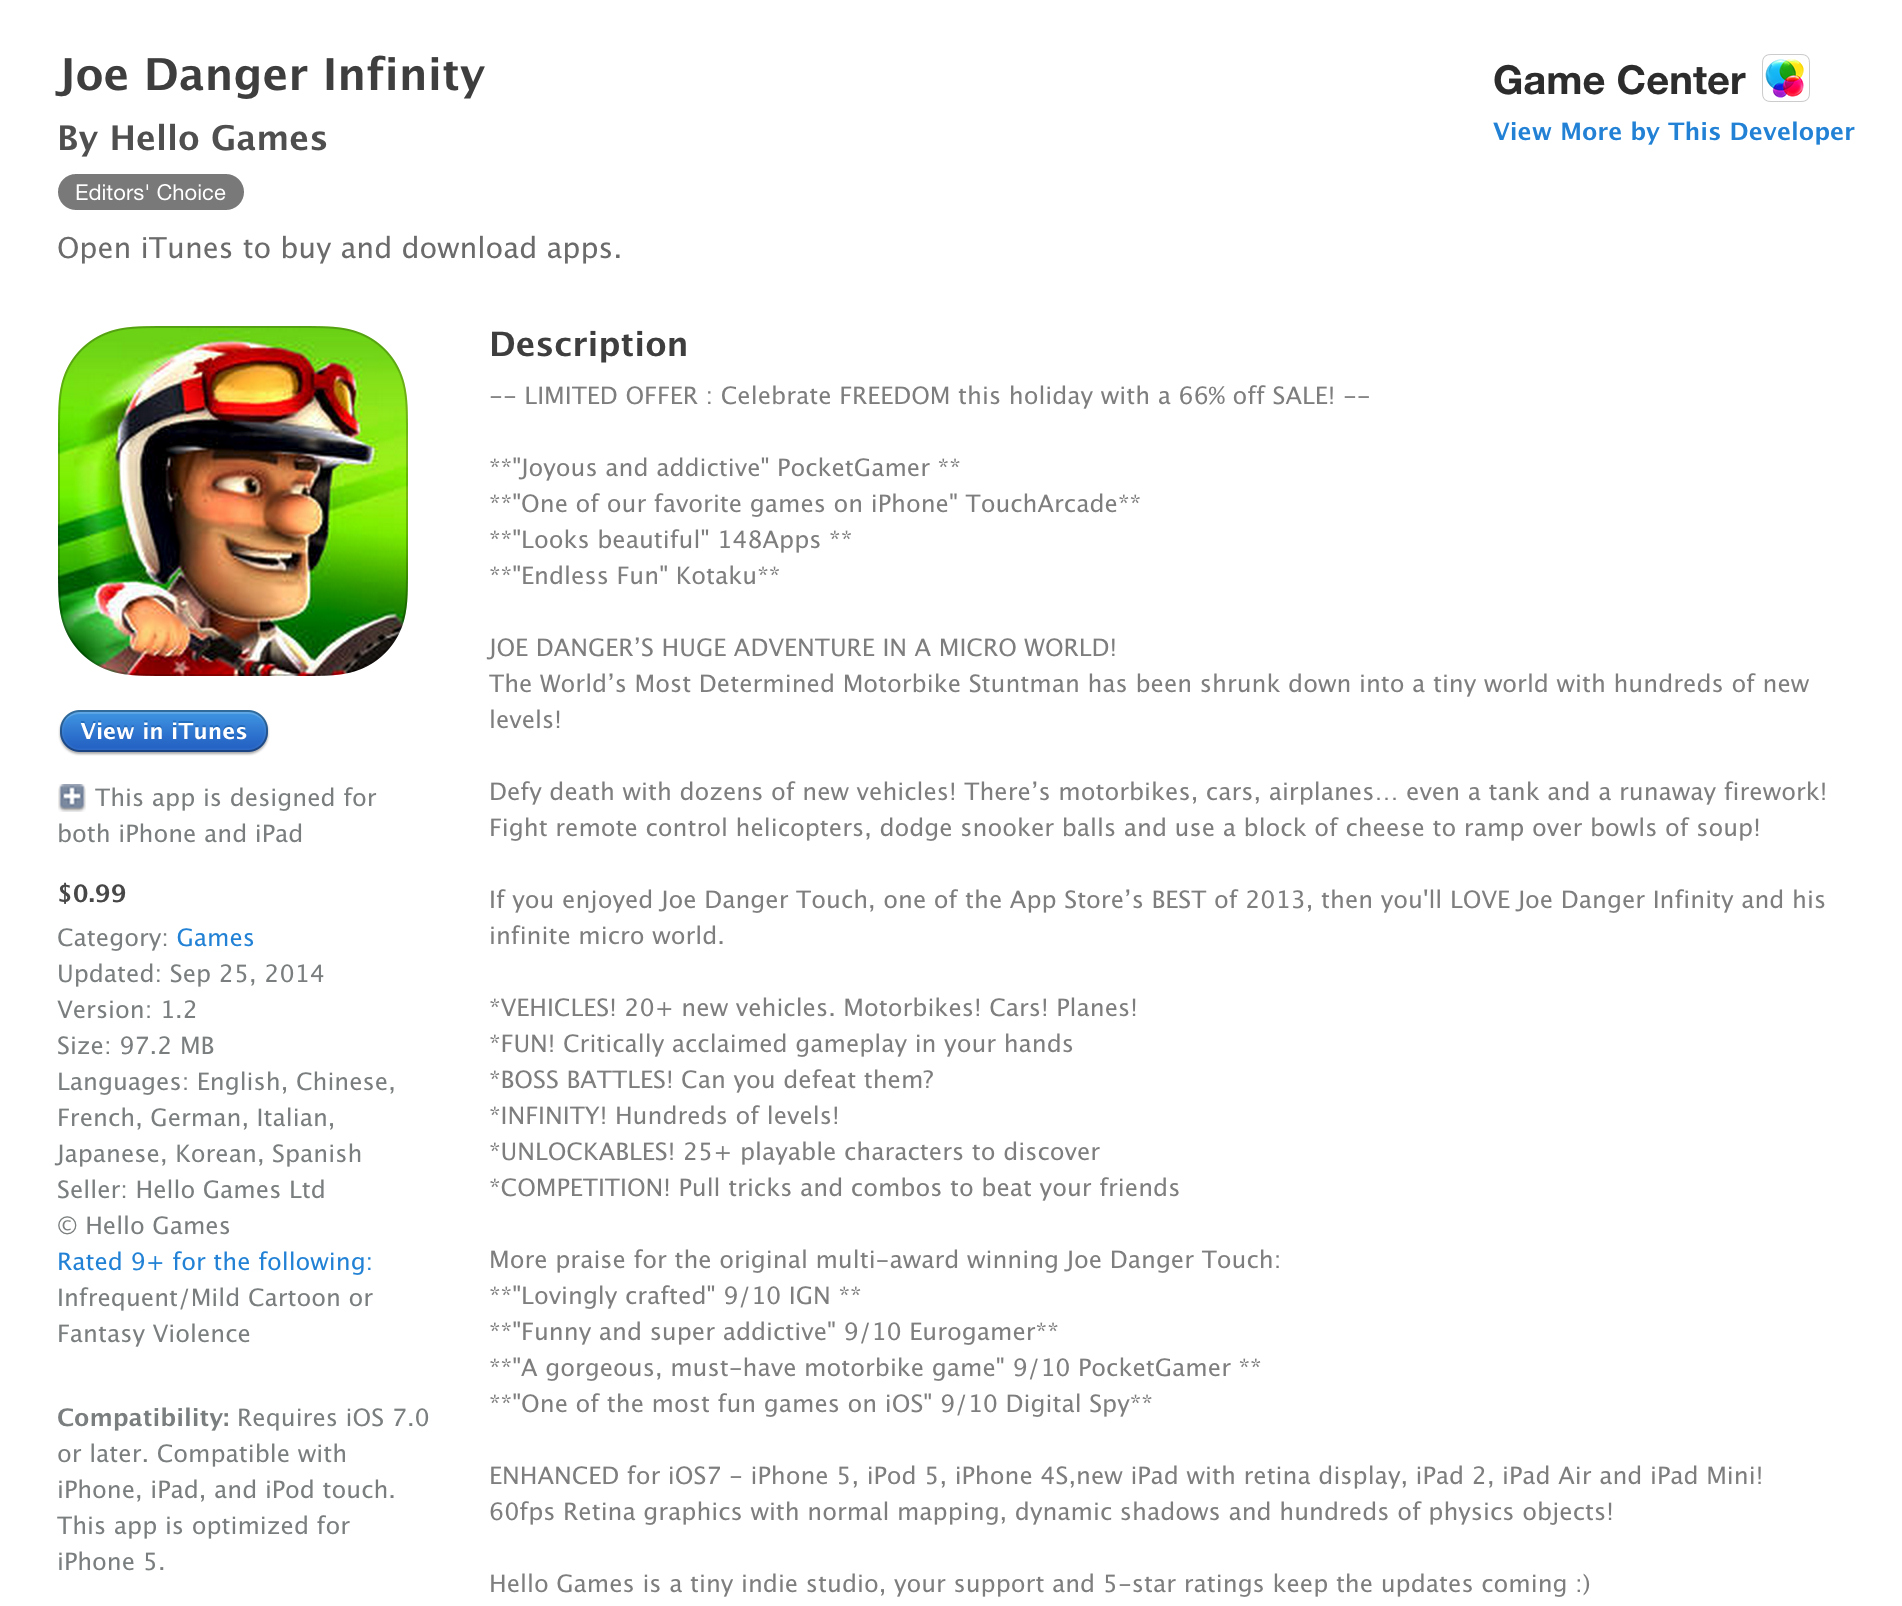 Games/Apps: Joe Danger Infinity $1 (Reg  $3), PlayStation TV